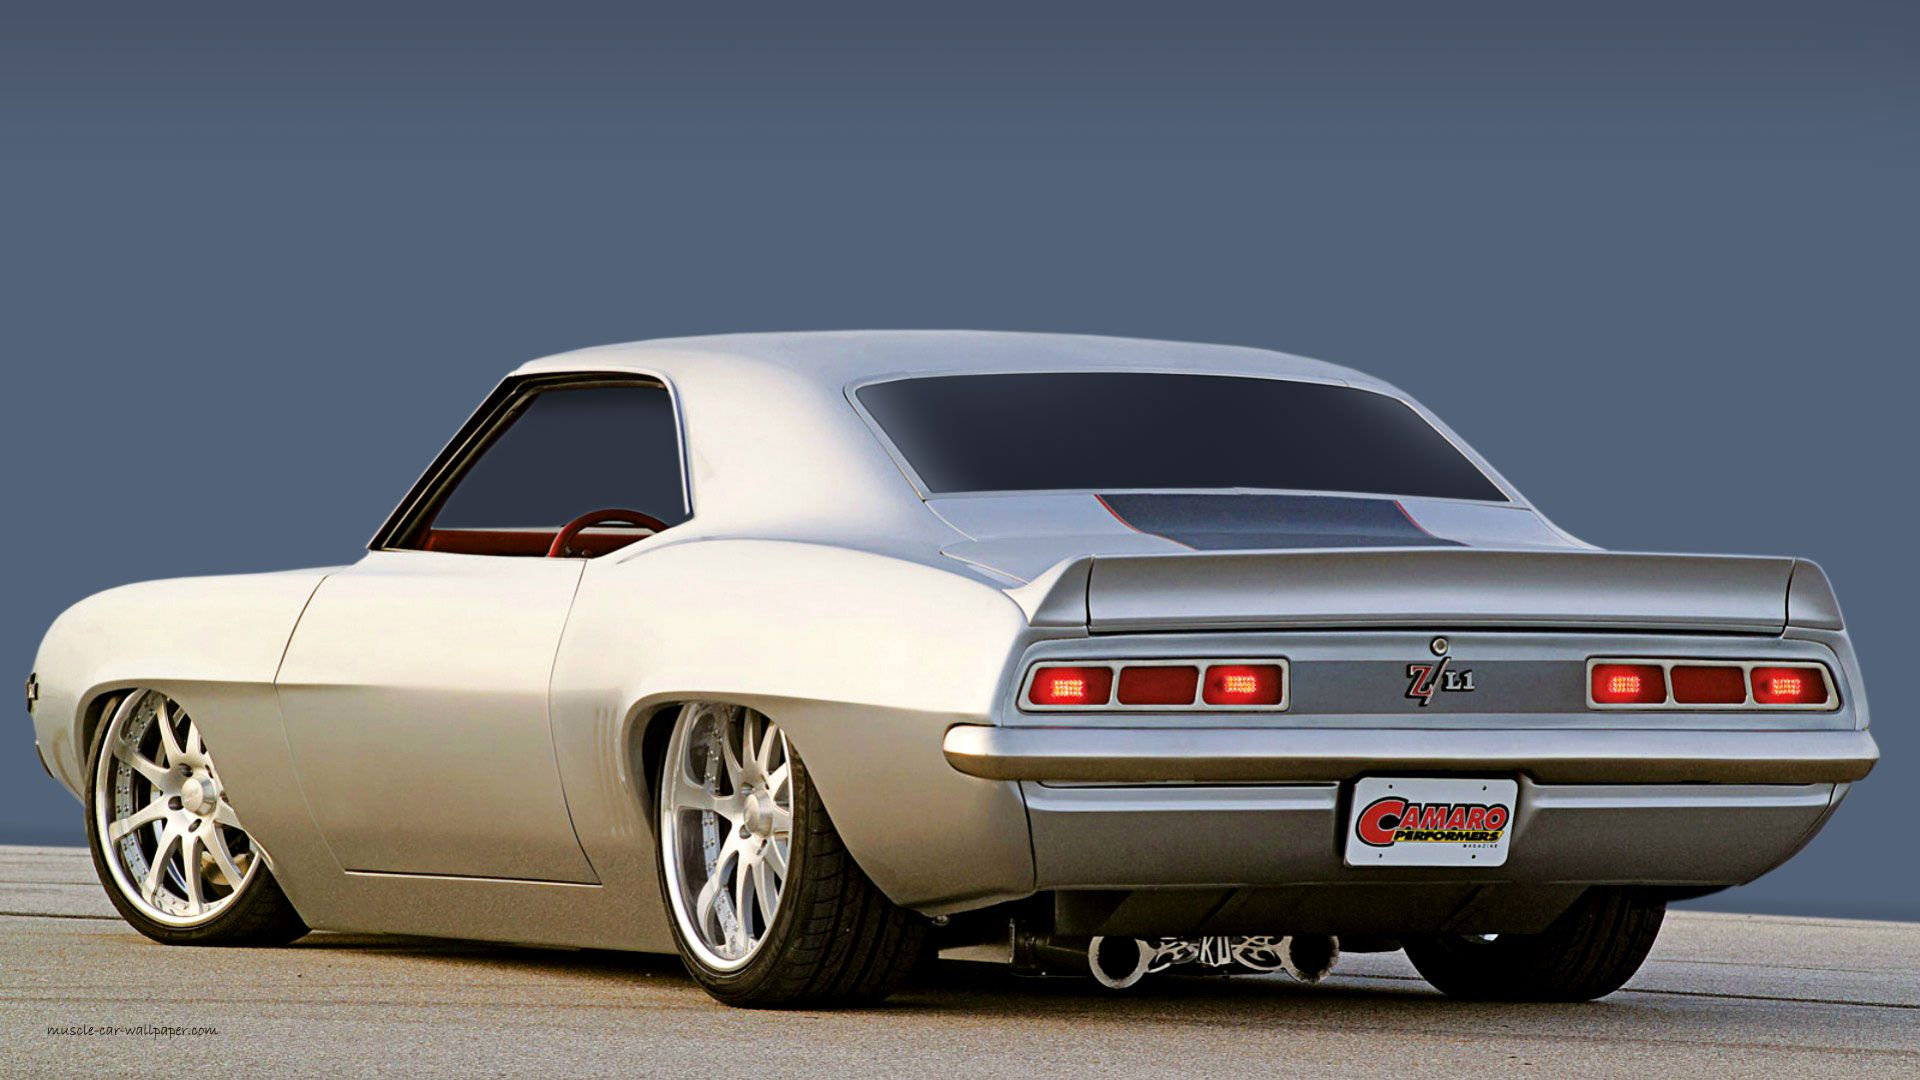 1969 Camaro Custom Muscle Car Wallpaper 1920 16 Chevrolet Camaro